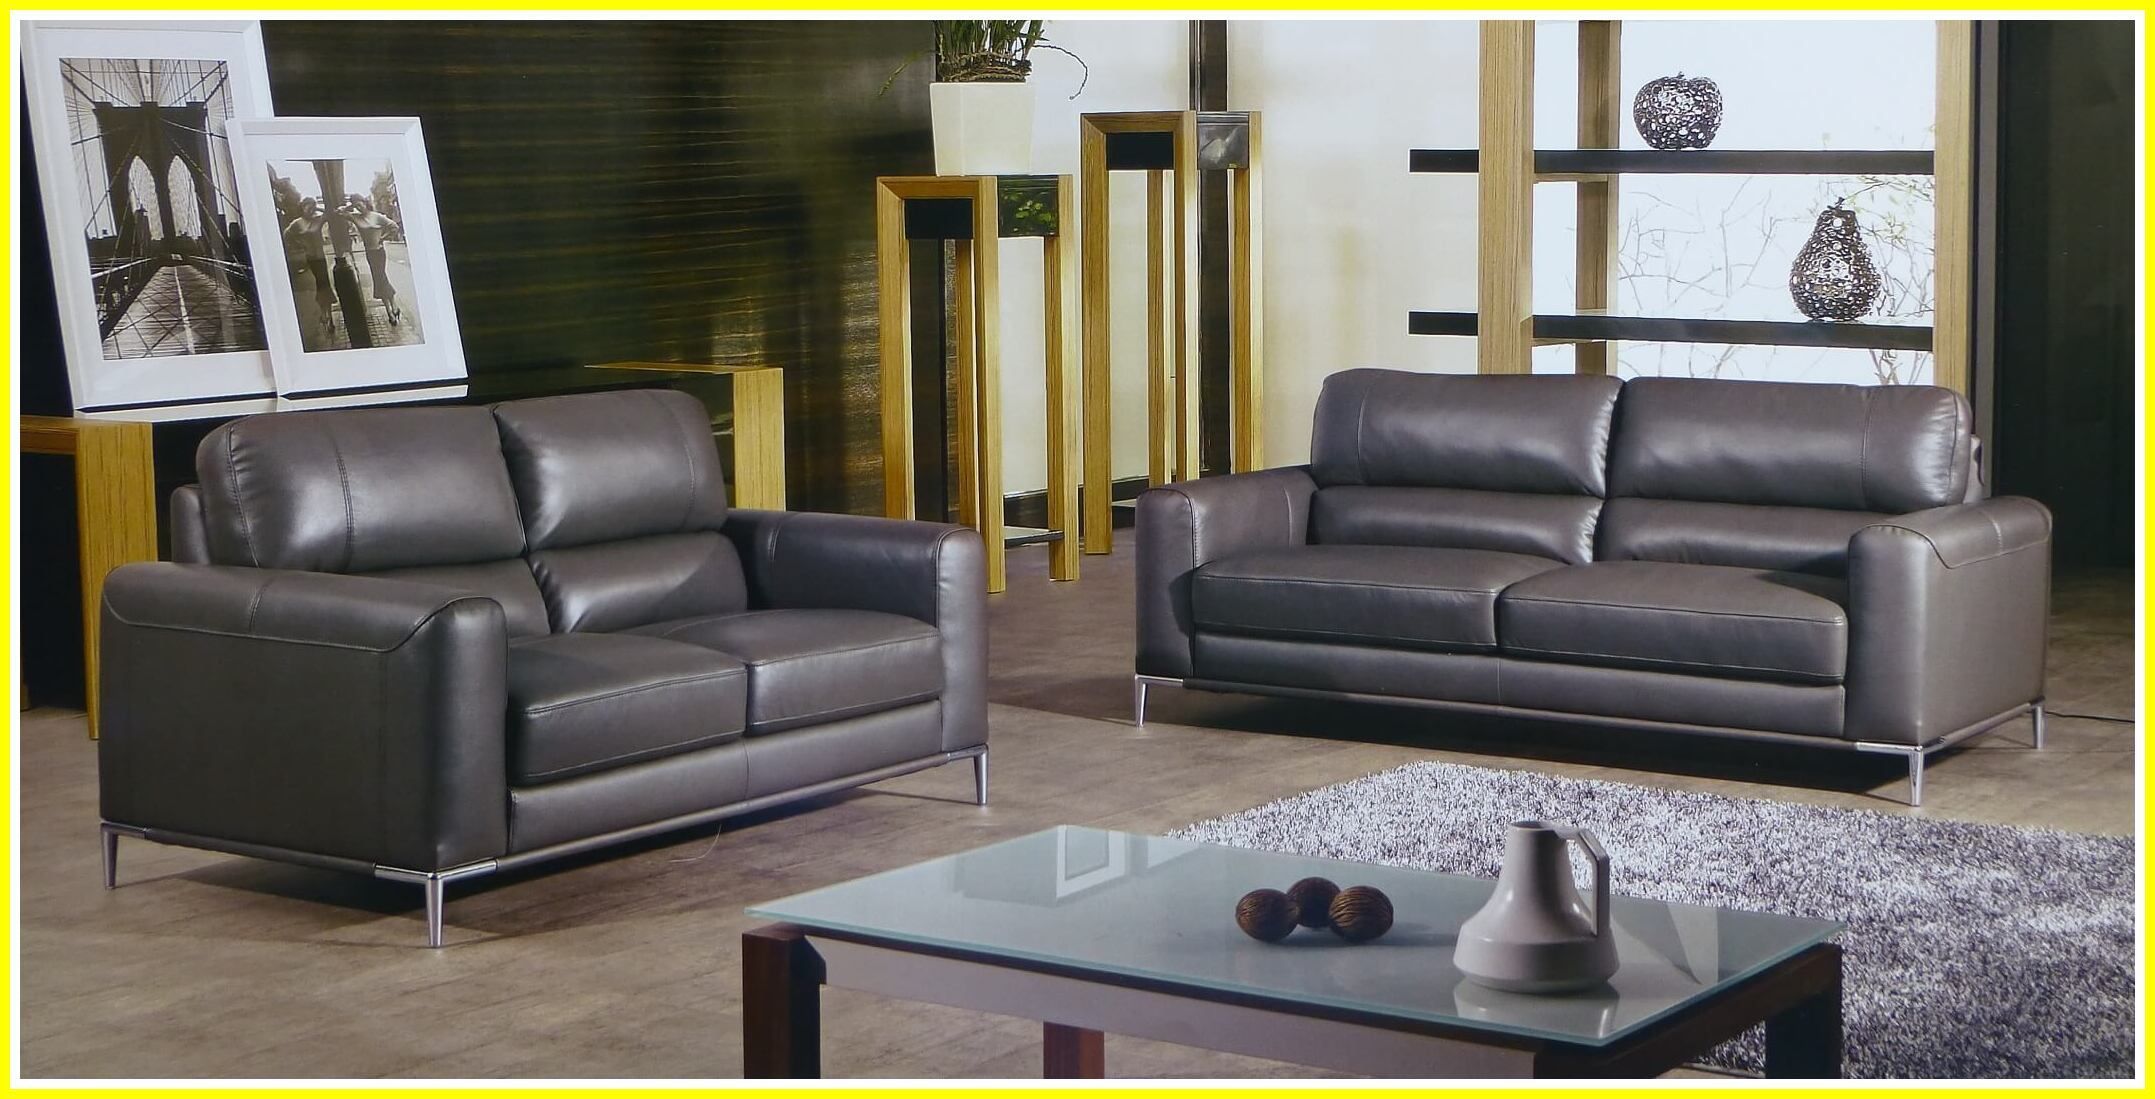 86 Reference Of Italian Sofa Set Online In 2020 Italian Sofa Set Sofa Set Online Sofa Set